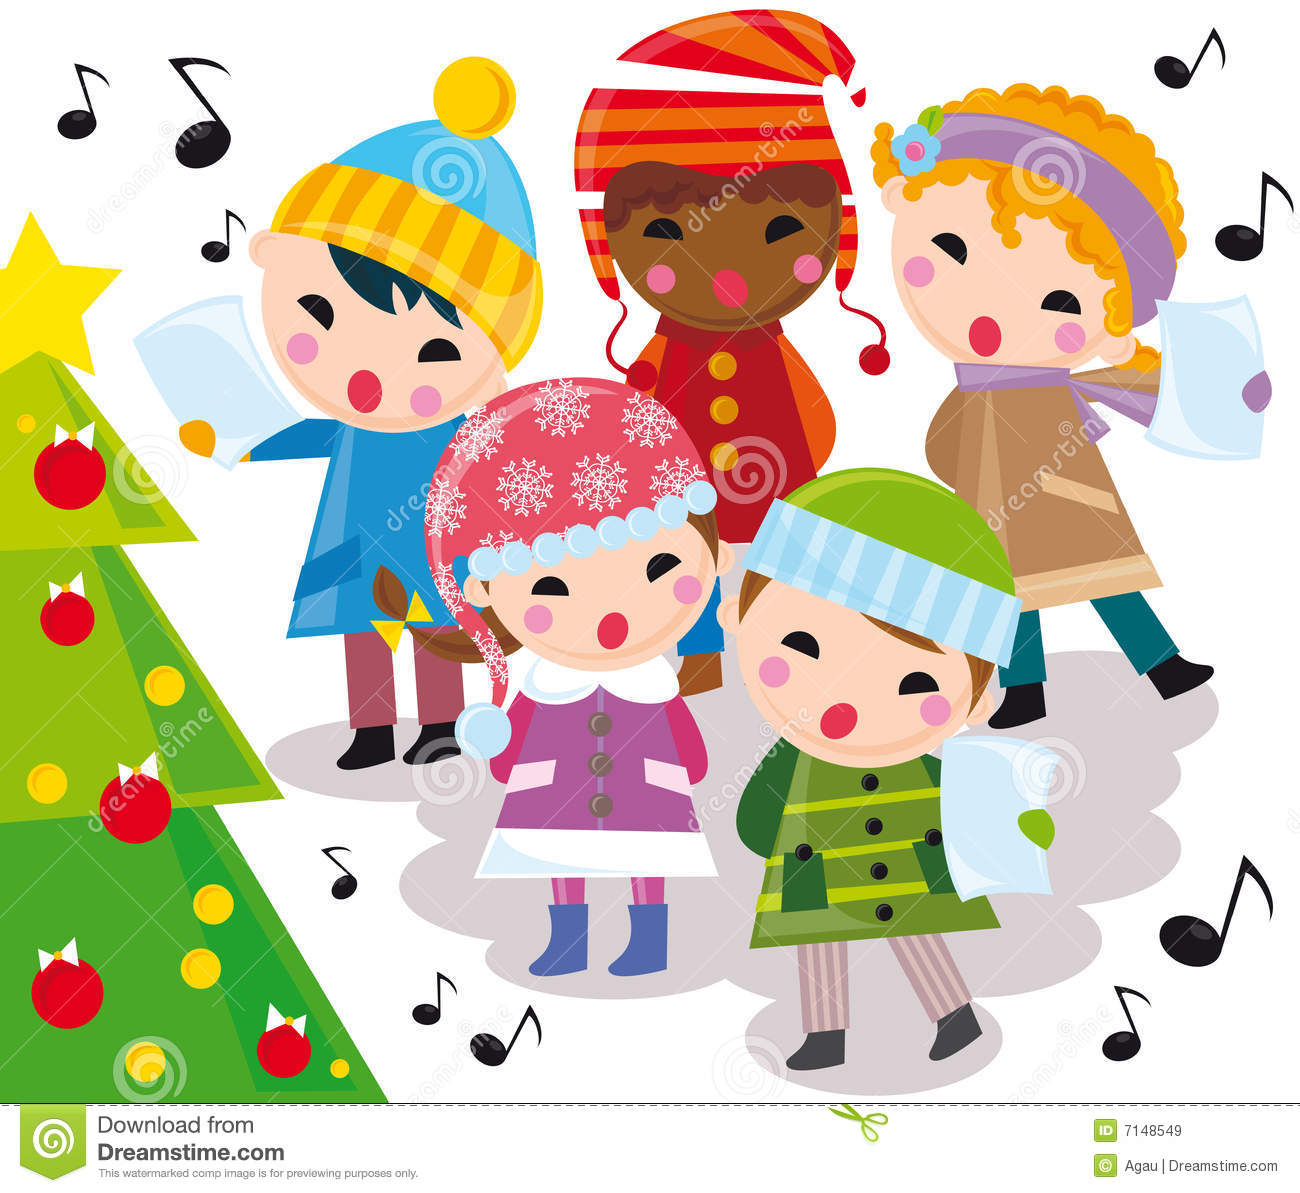 Christmas carols stock vector. Illustration of music, singing - 7148549